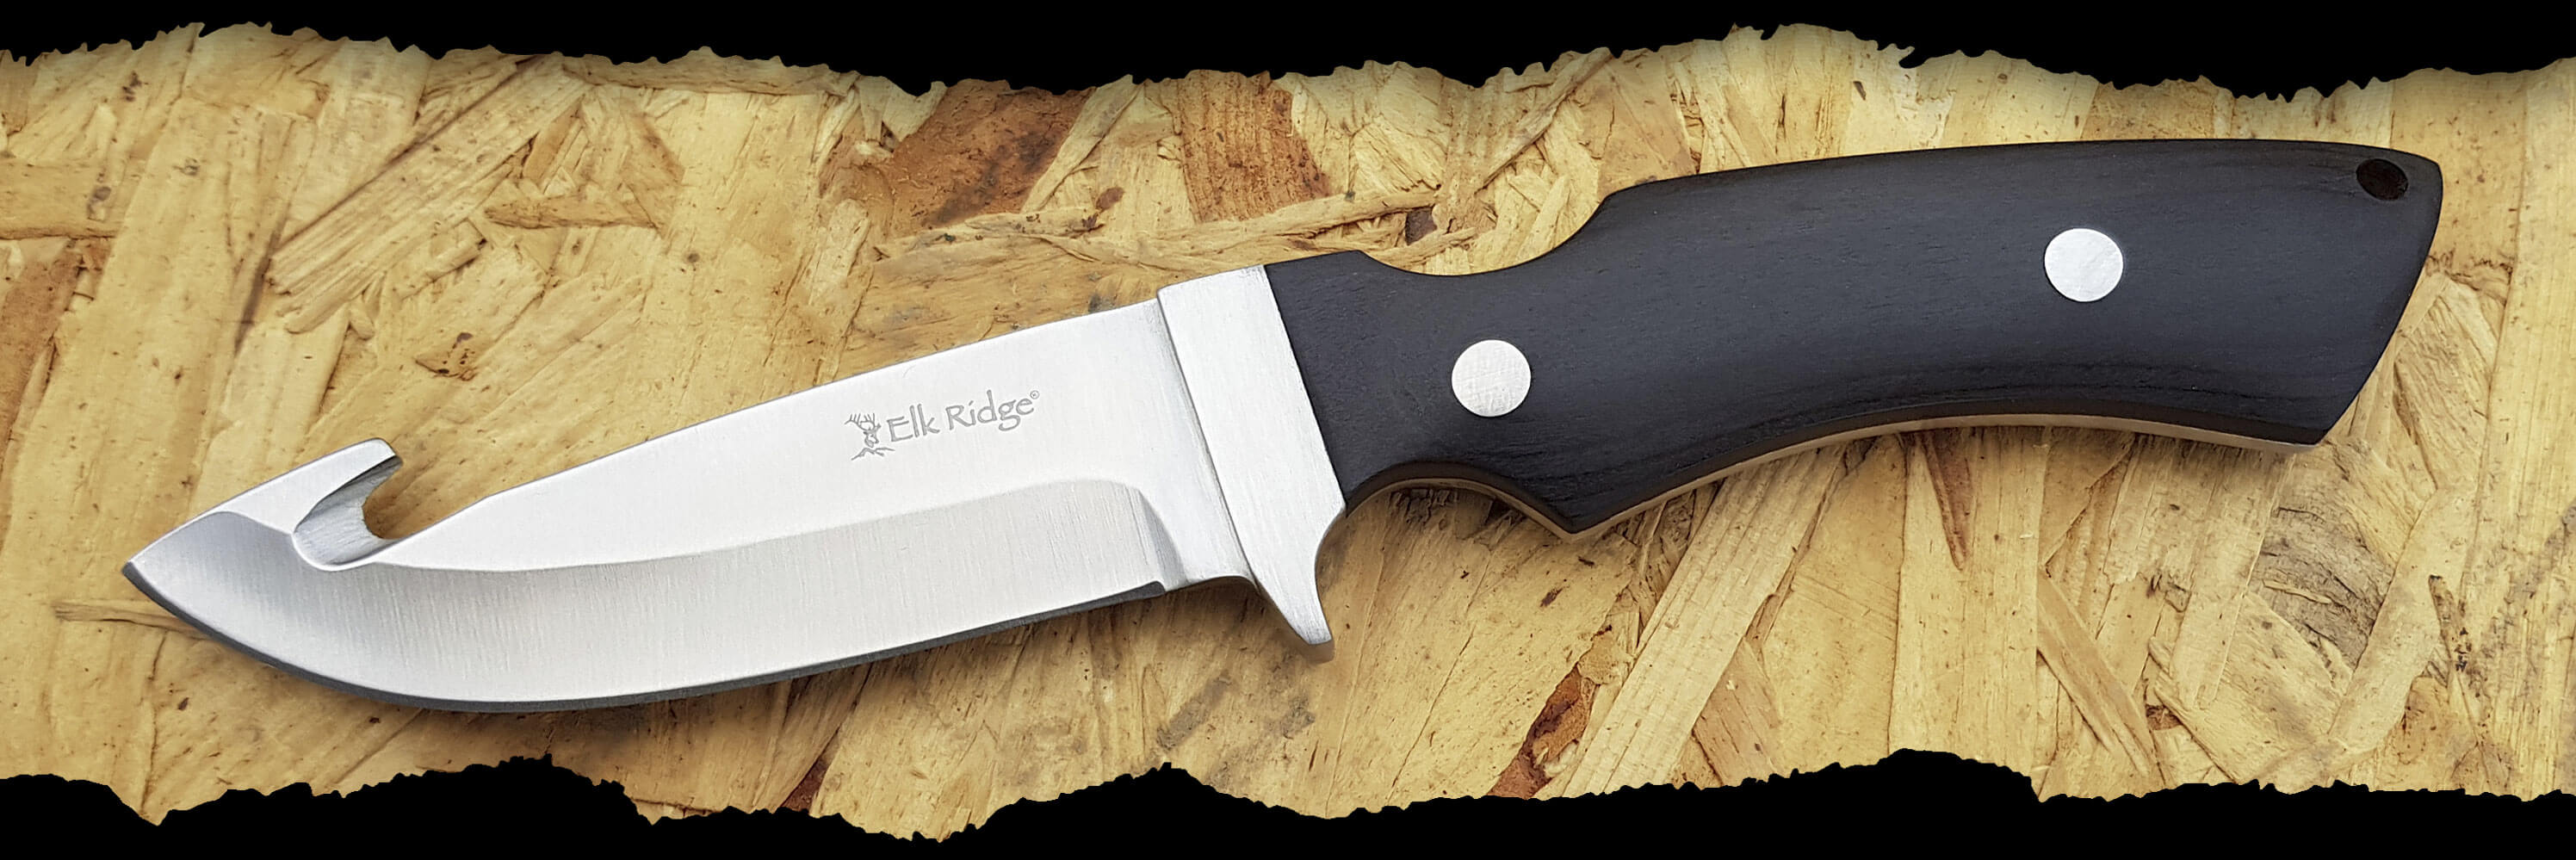 ELK RIDGE TACTICAL GENTLEMAN'S KNIFE - GUT HOOK